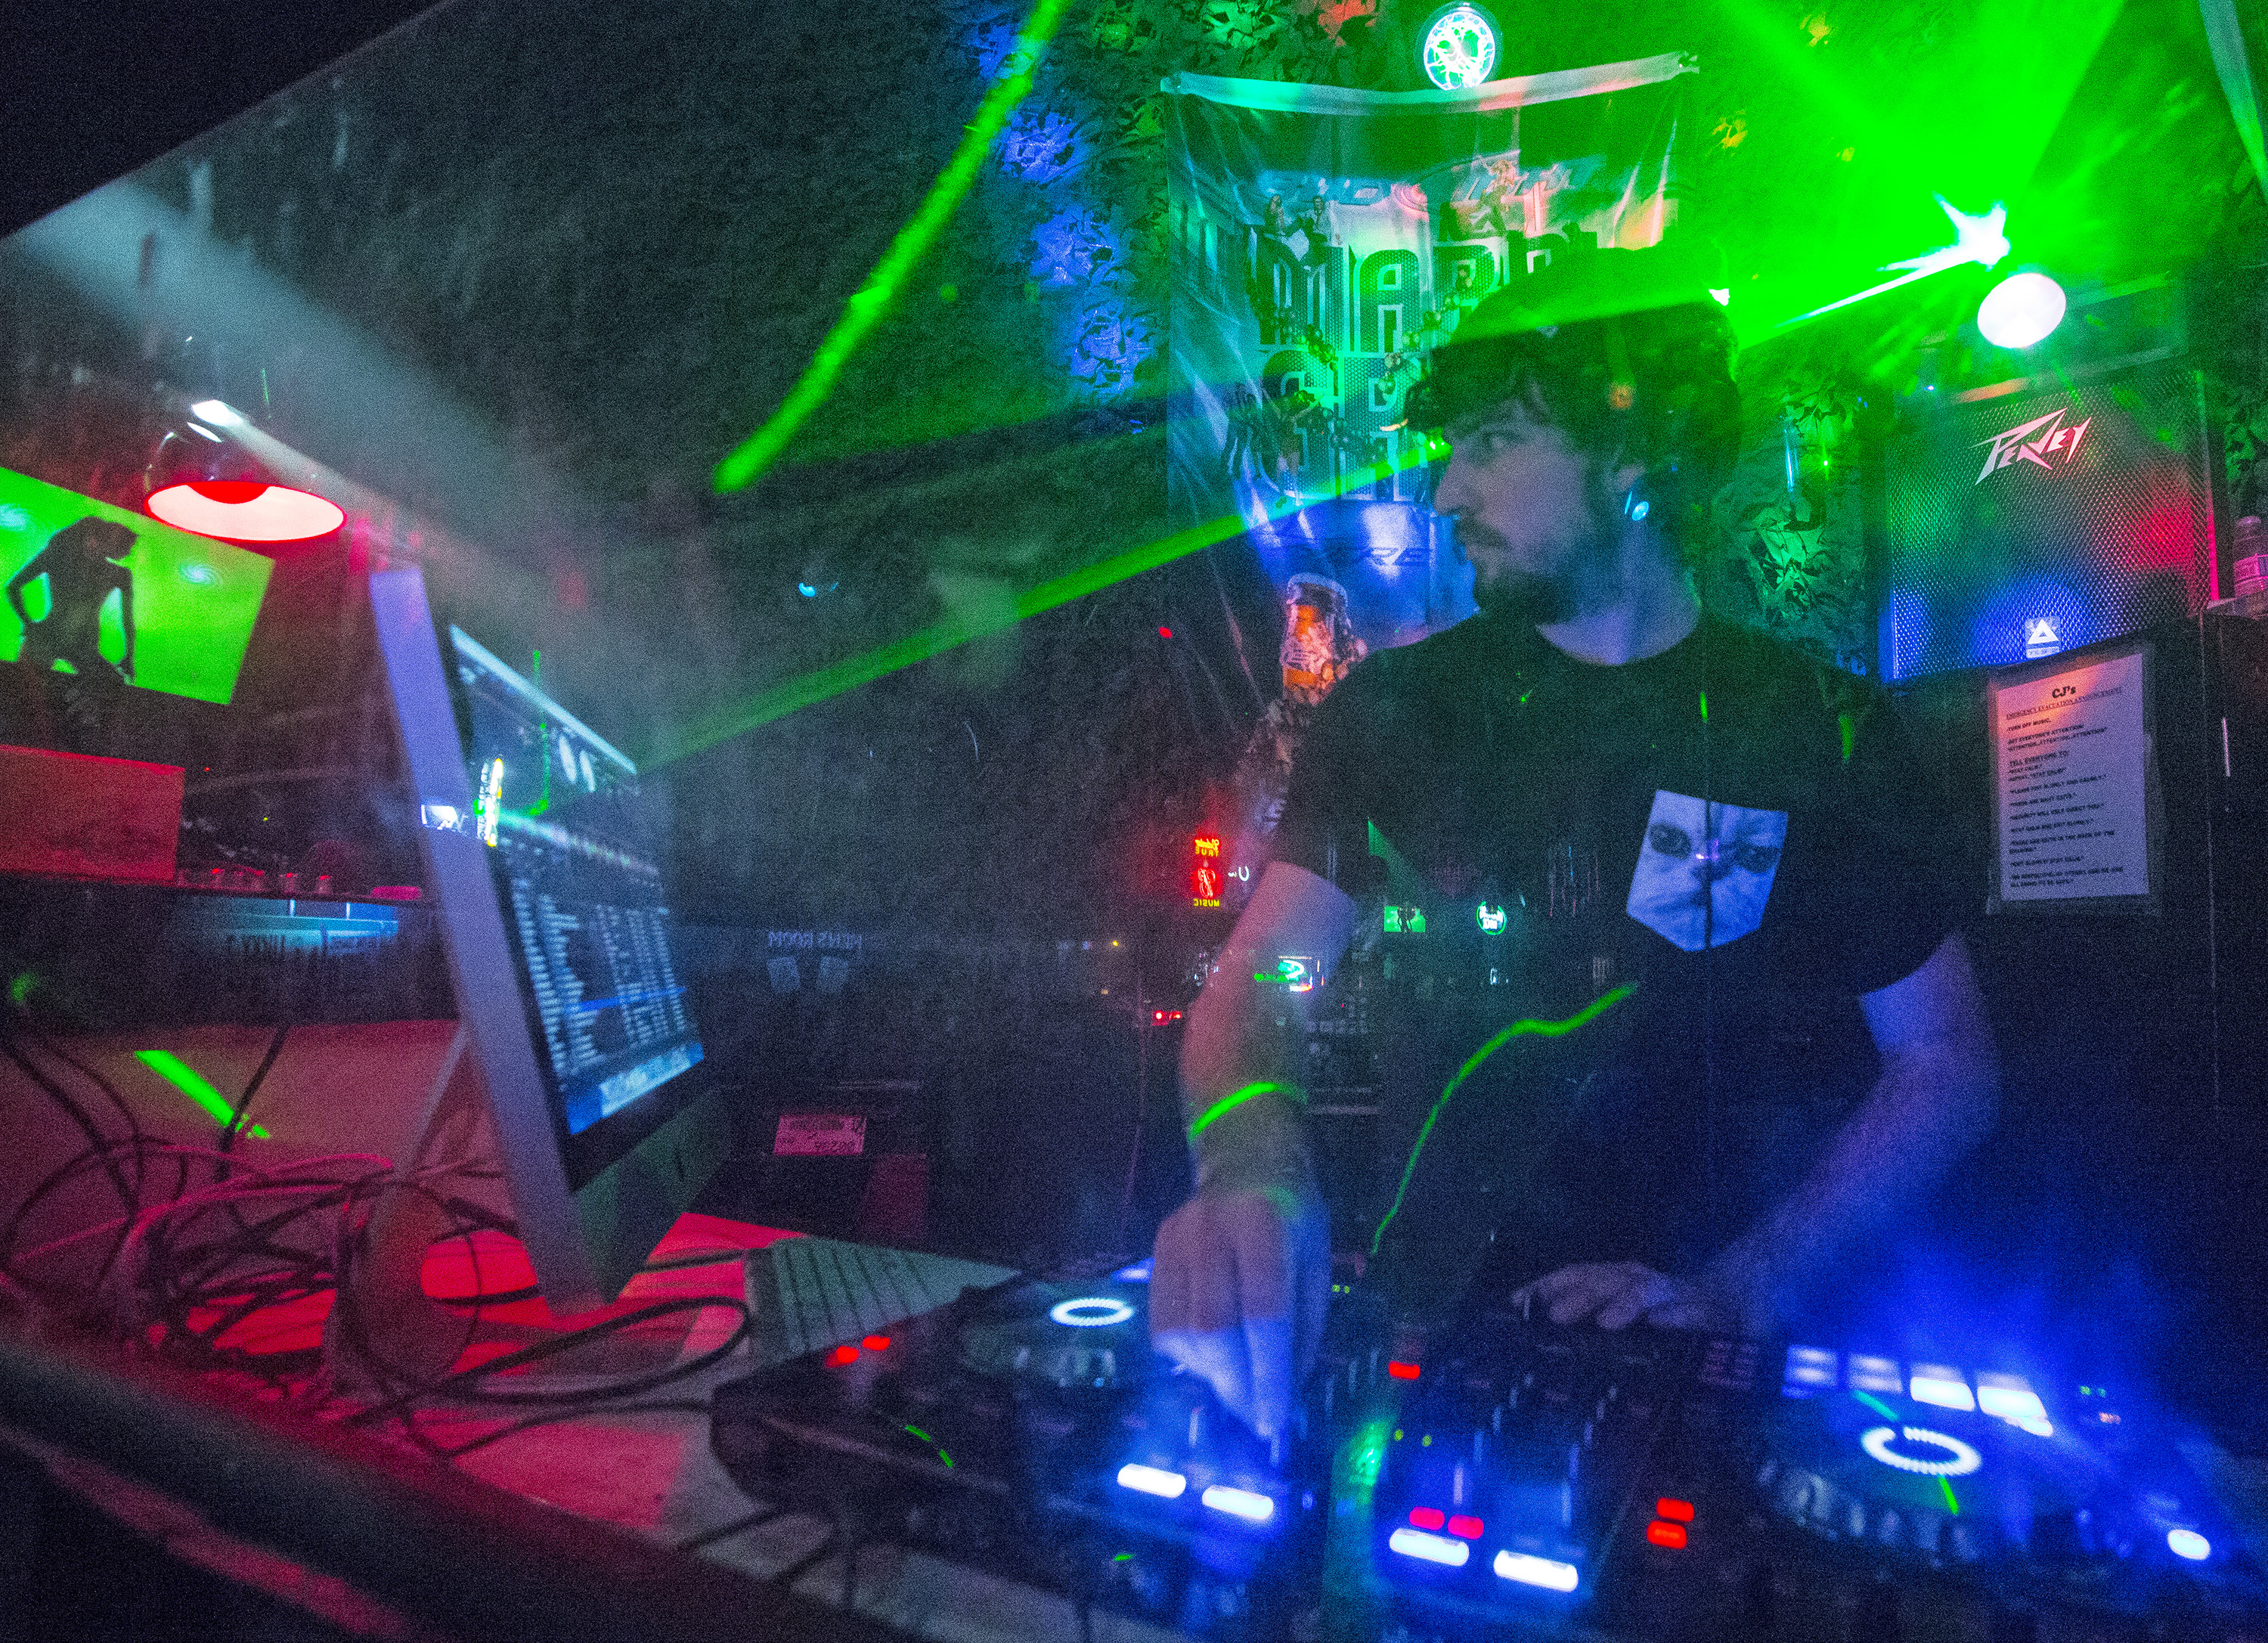 EDM dominates the music scene: Electronic dance music strewn into mainstream, Moscow-Pullman campuses